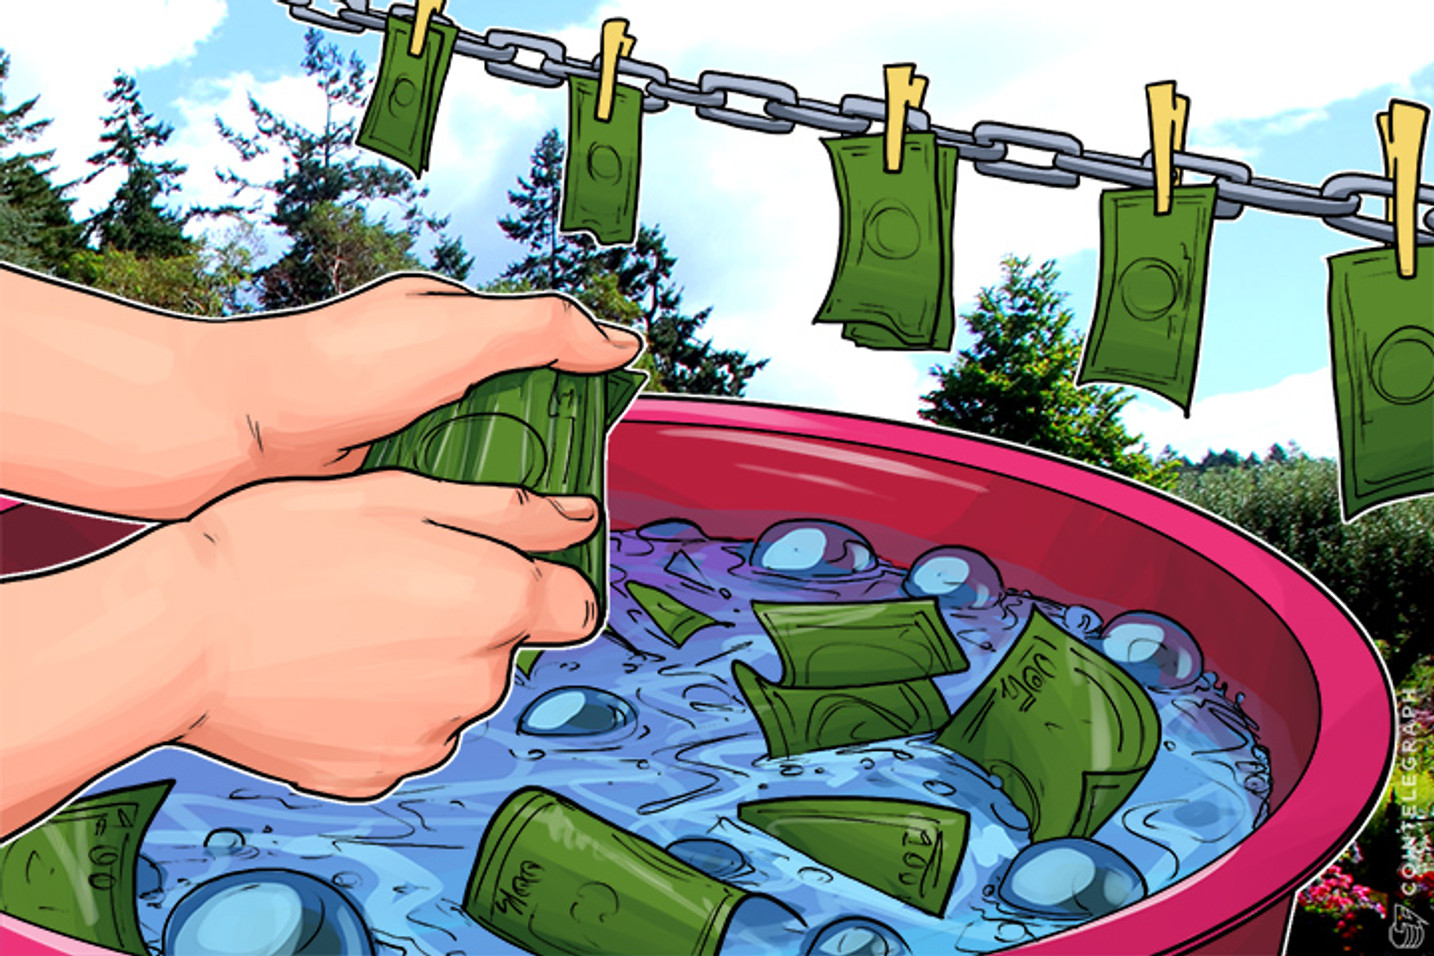 Hong Kong Government: Blockchain May Increase Money Laundering Risks